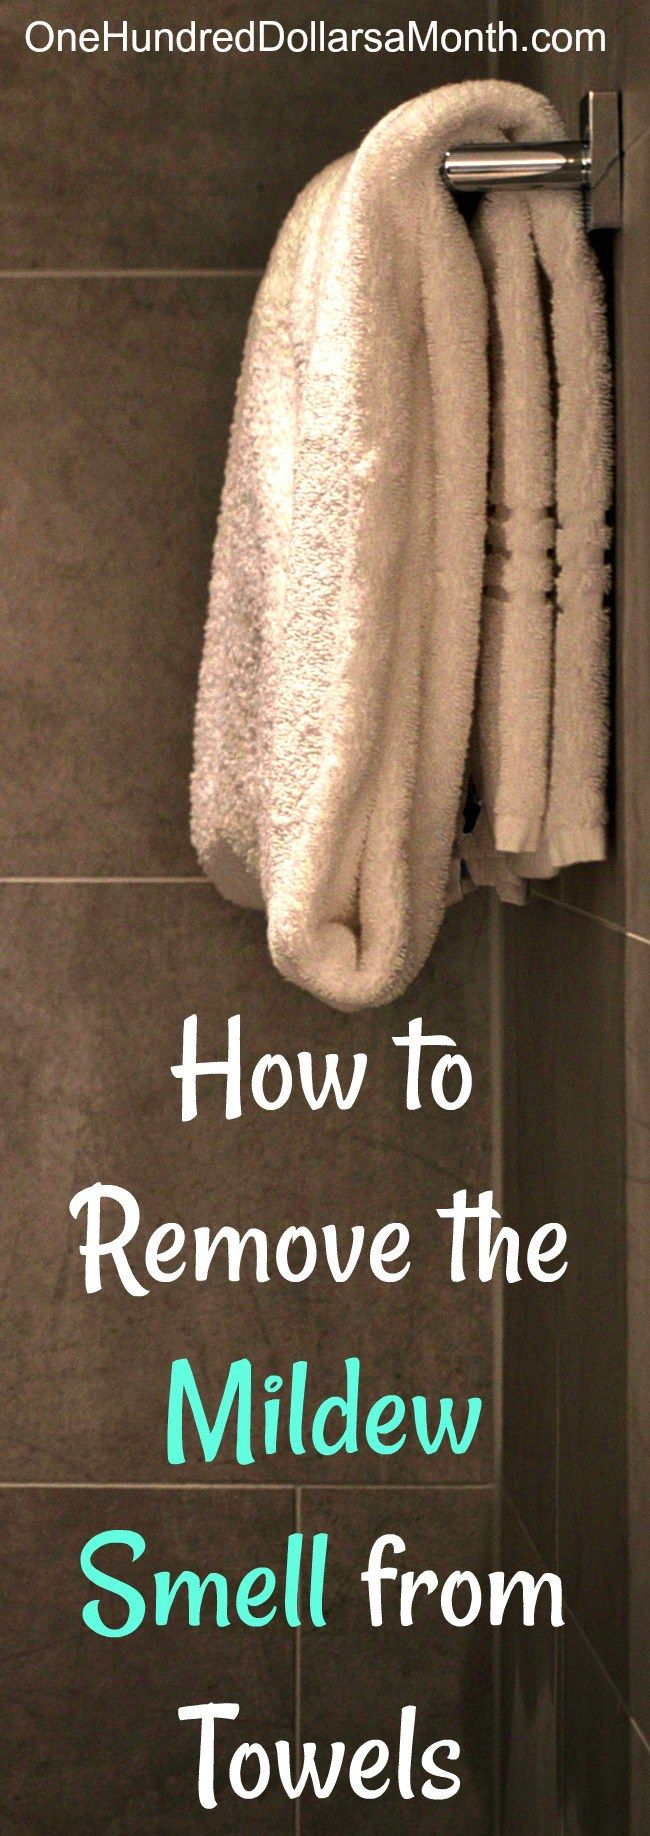 a1768e7b3a02fe38df4c97e097aaa2c1 - How To Get Rid Of Mildew Smell In Hotel Room